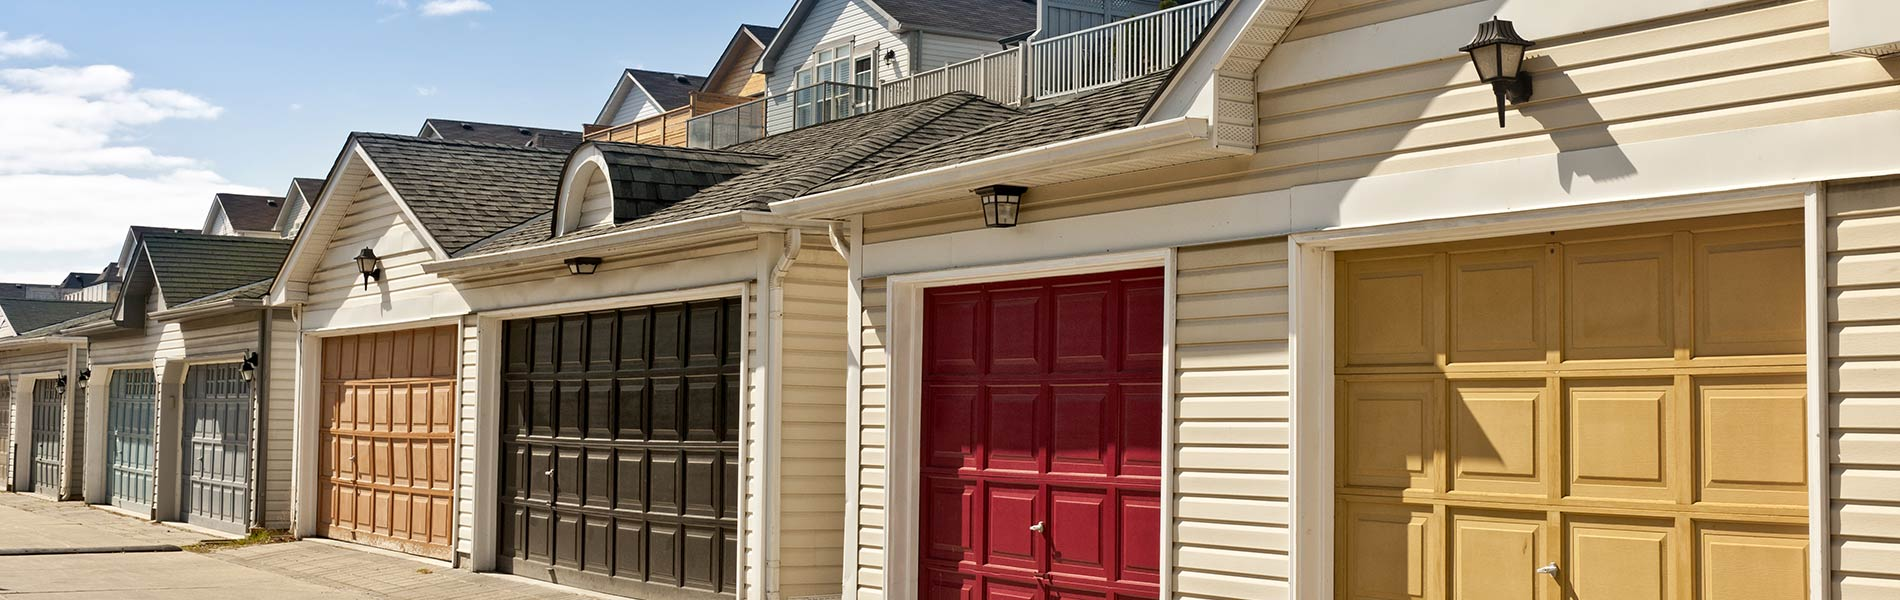 Interstate Garage Door Repair Service, St Paul, MN 651-309-8225